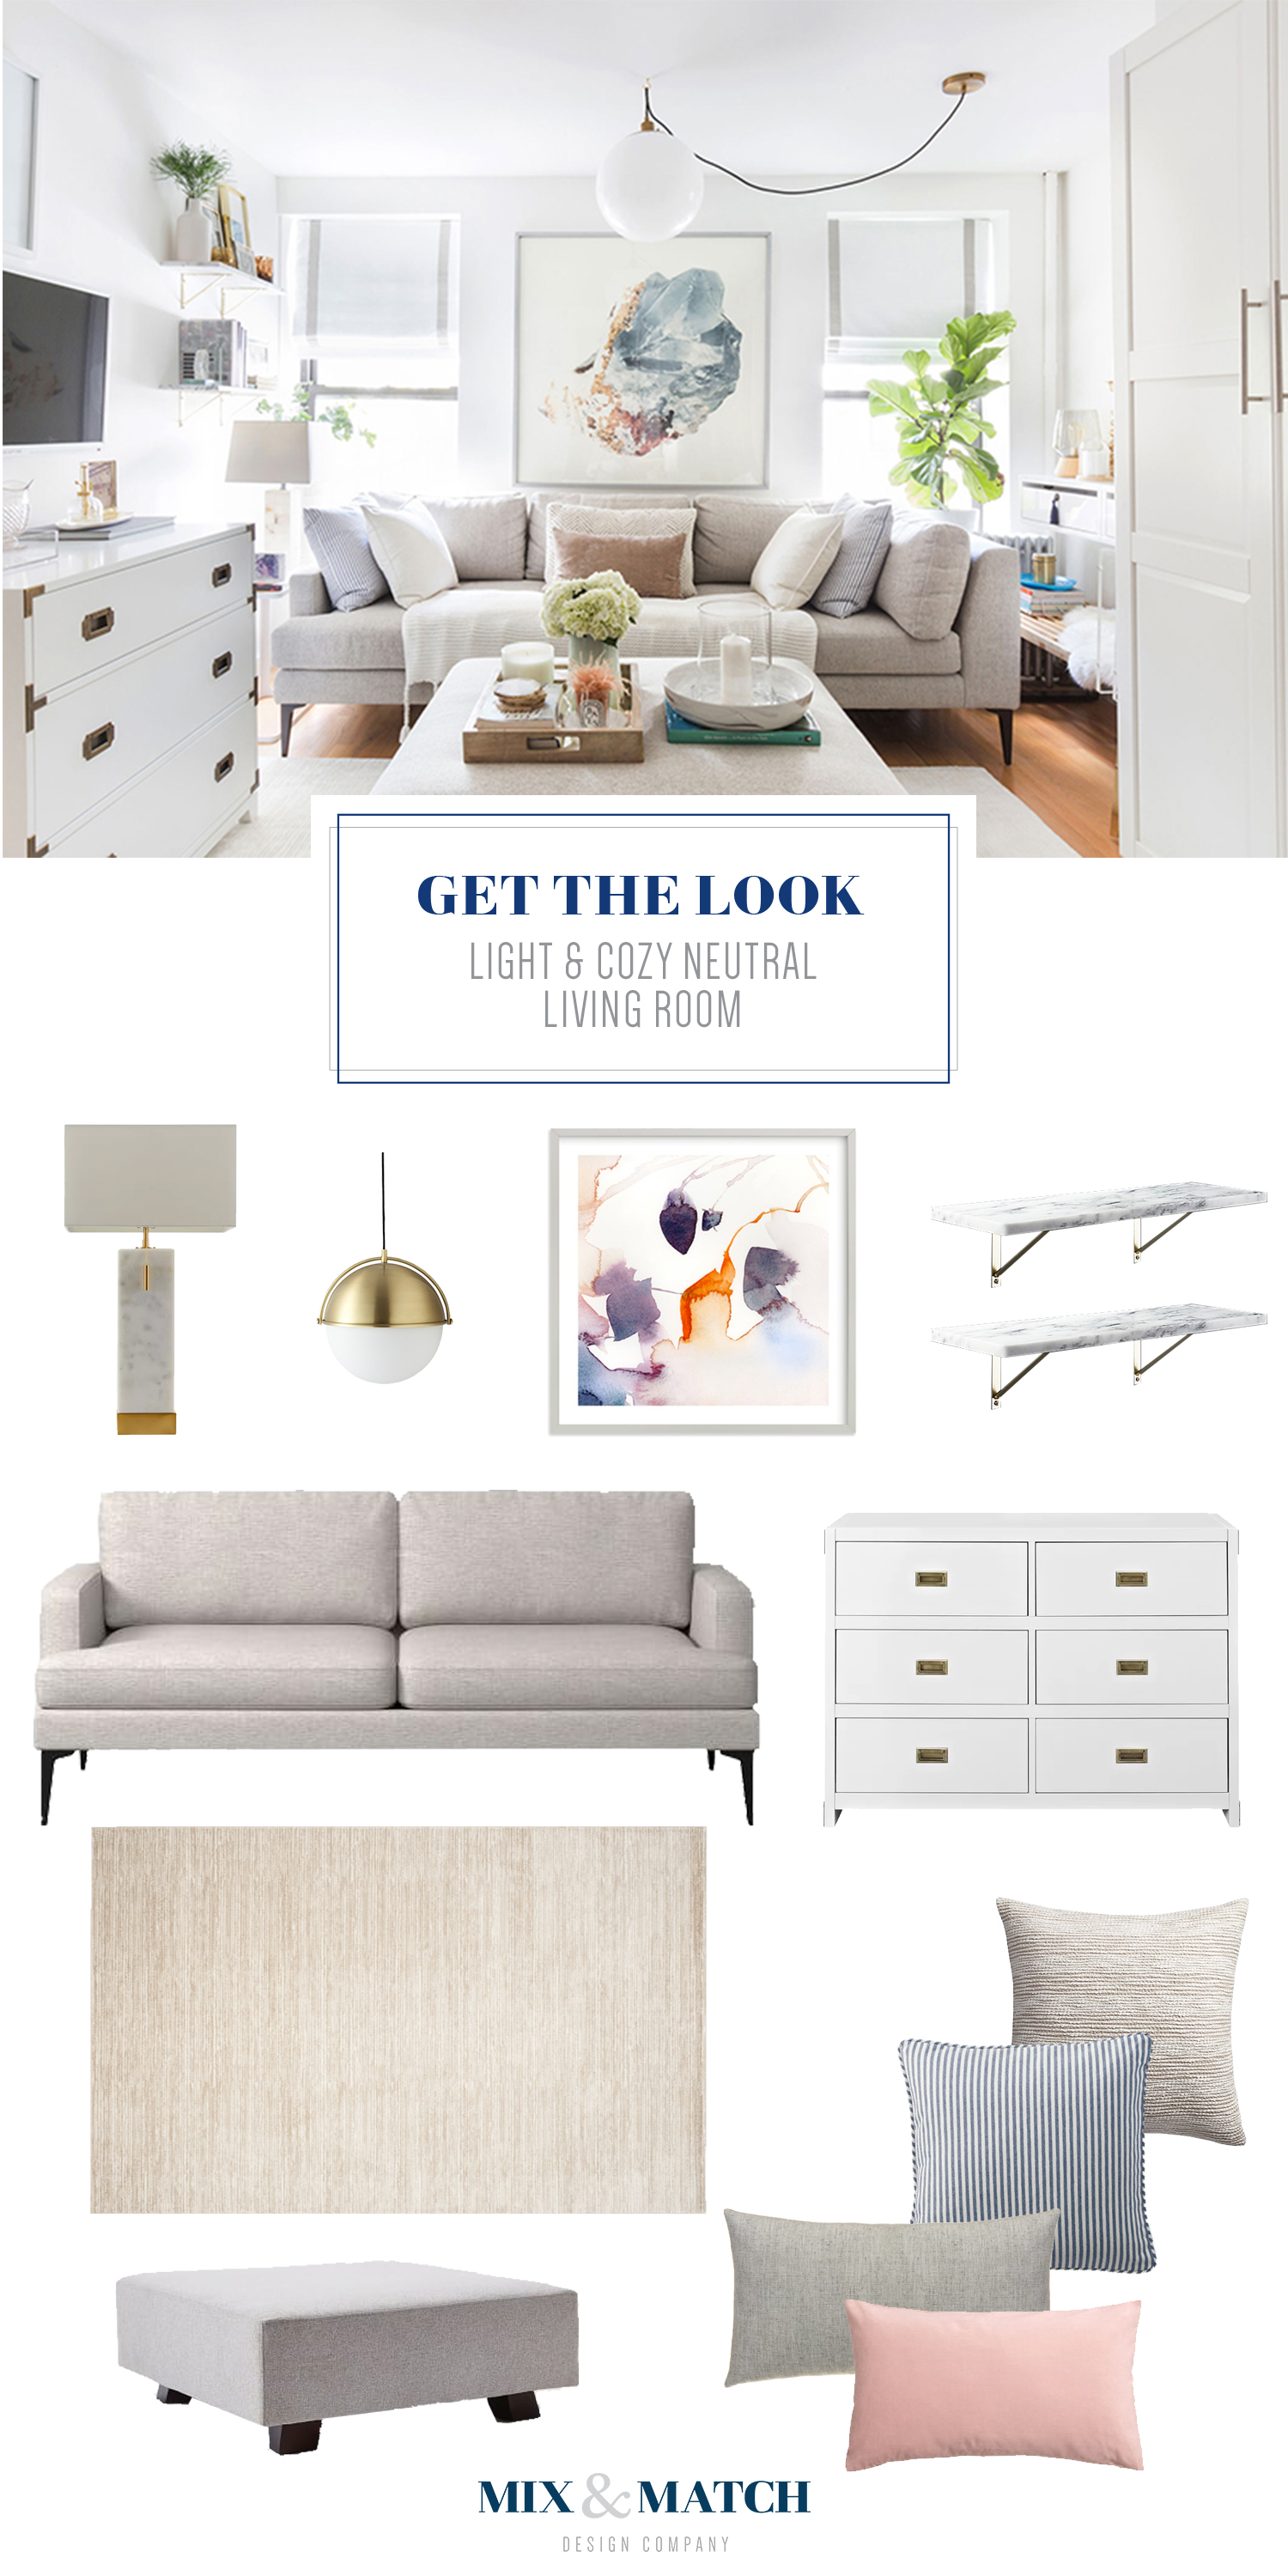 Get the look of this light and cozy neutral living room! All the sources for the pieces shown are on the blog.